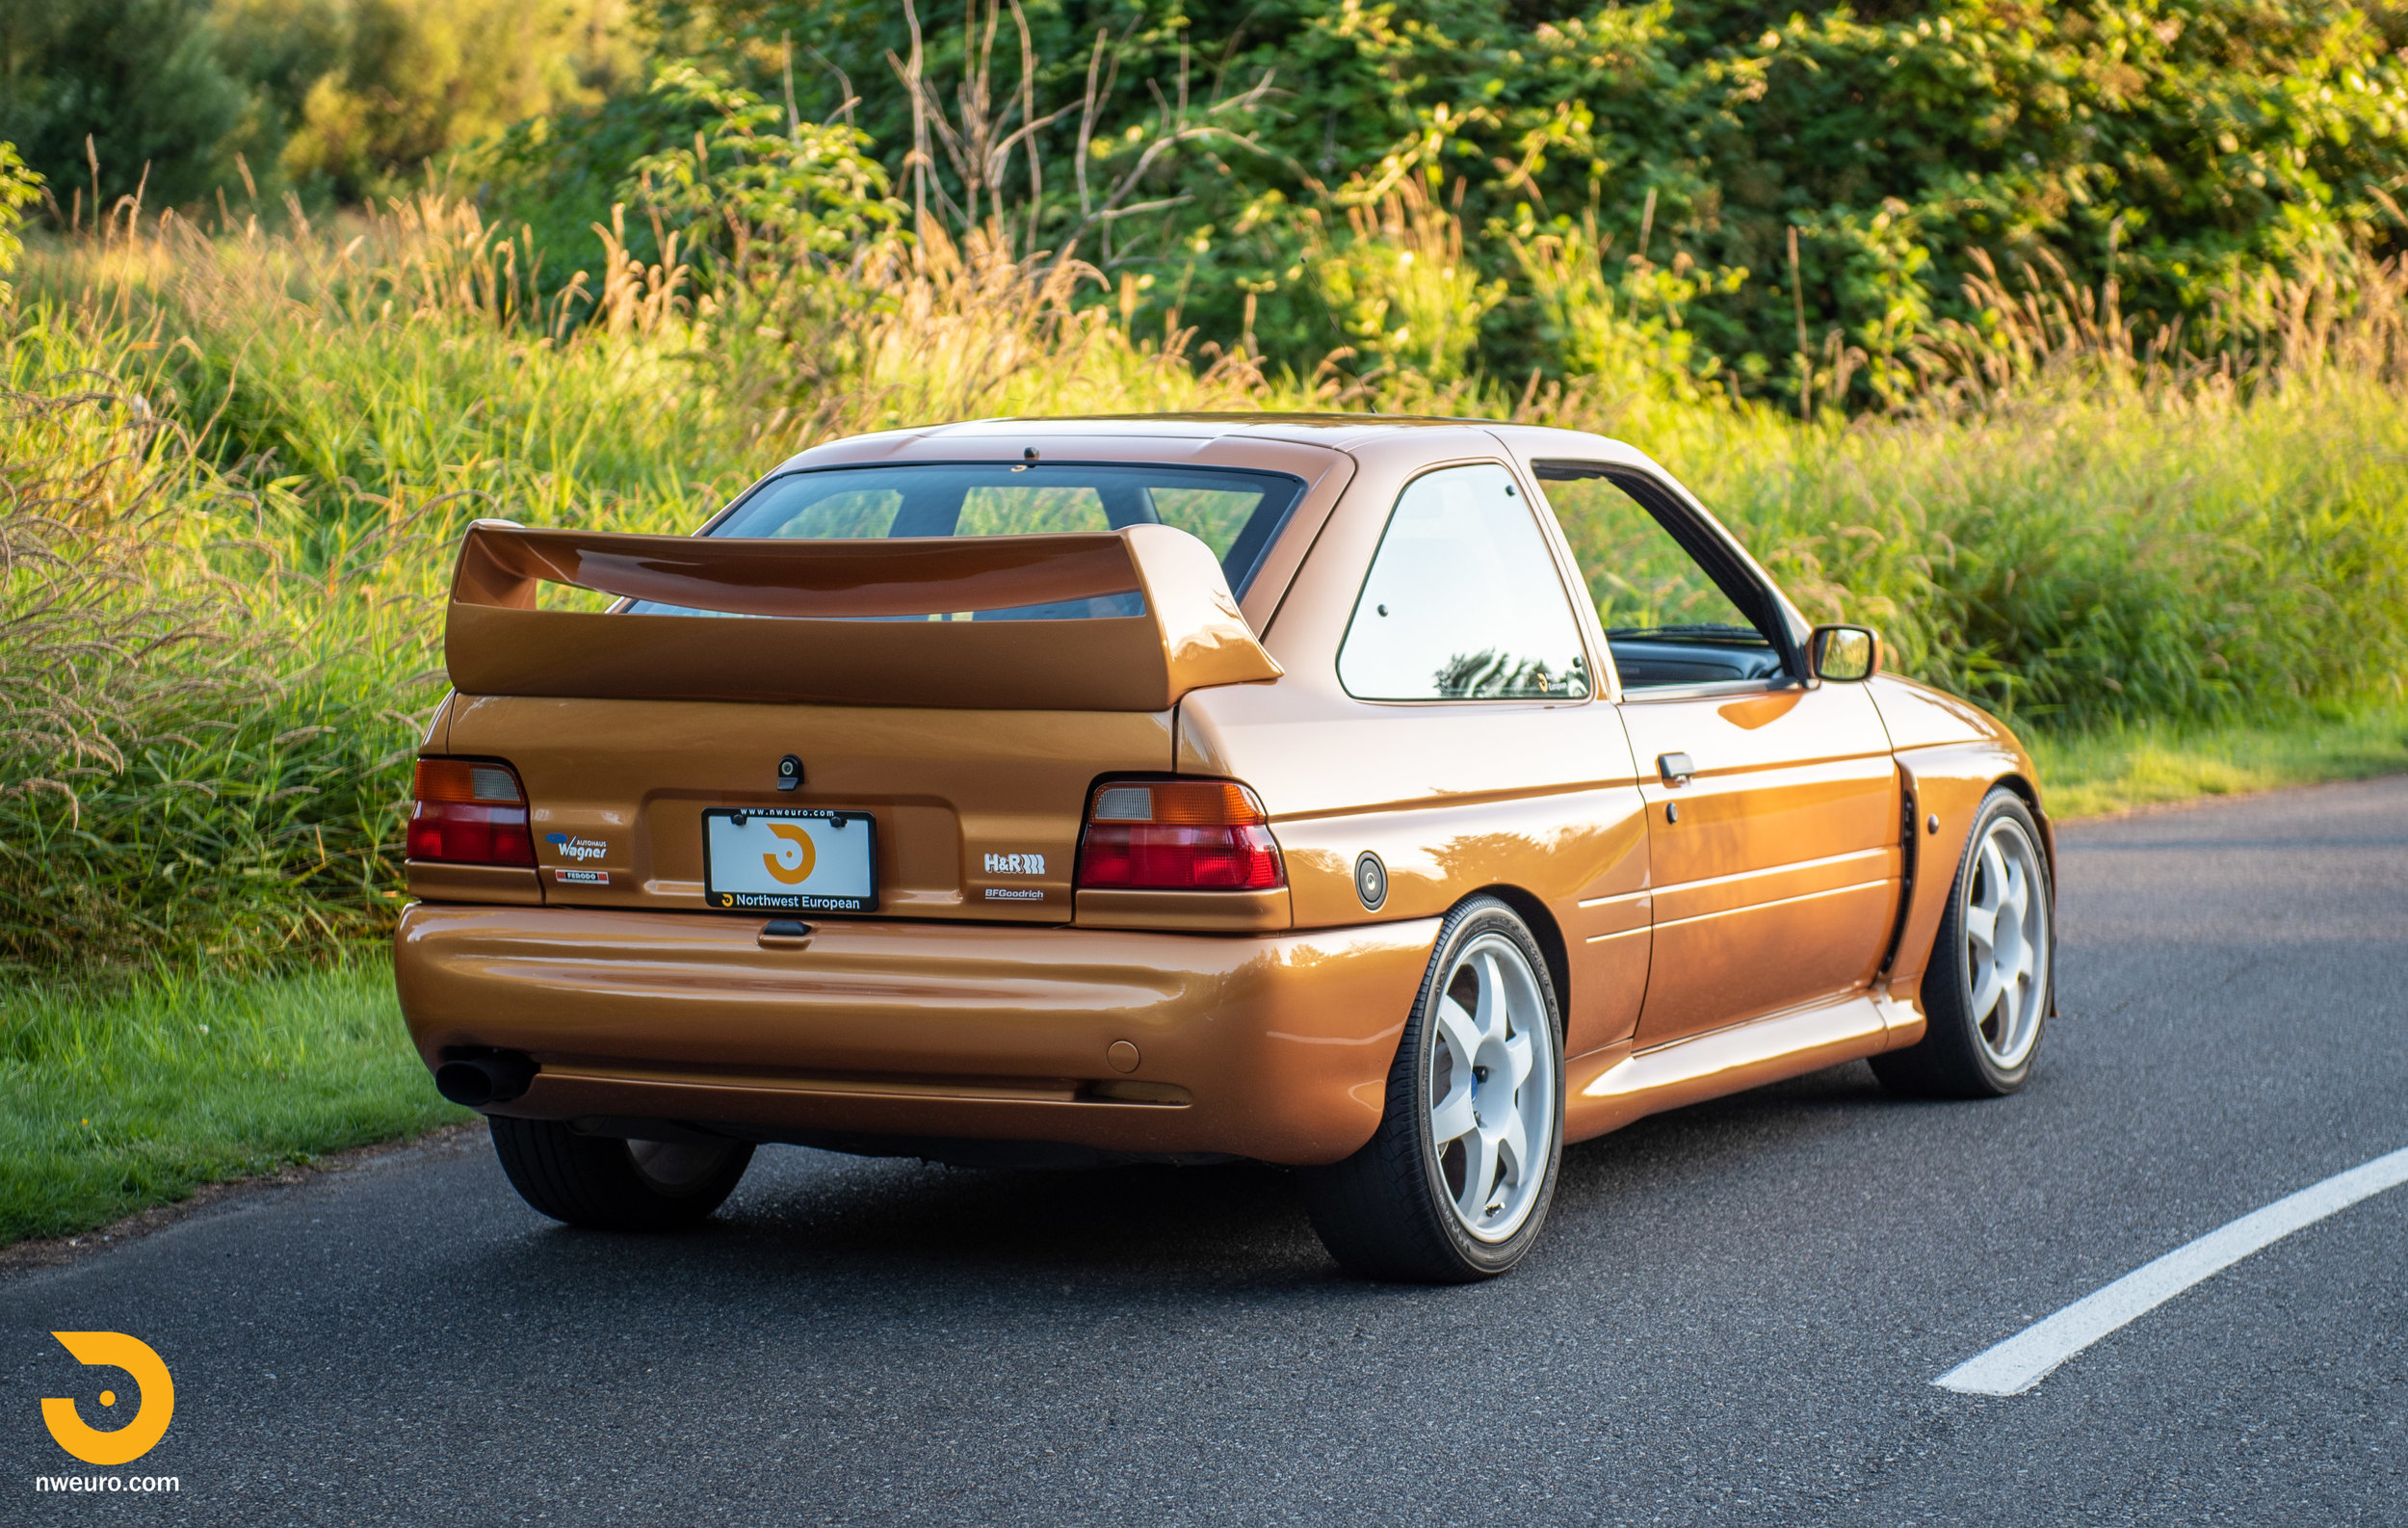 1995 Ford Escort Cosworth RS Gold-4.jpg